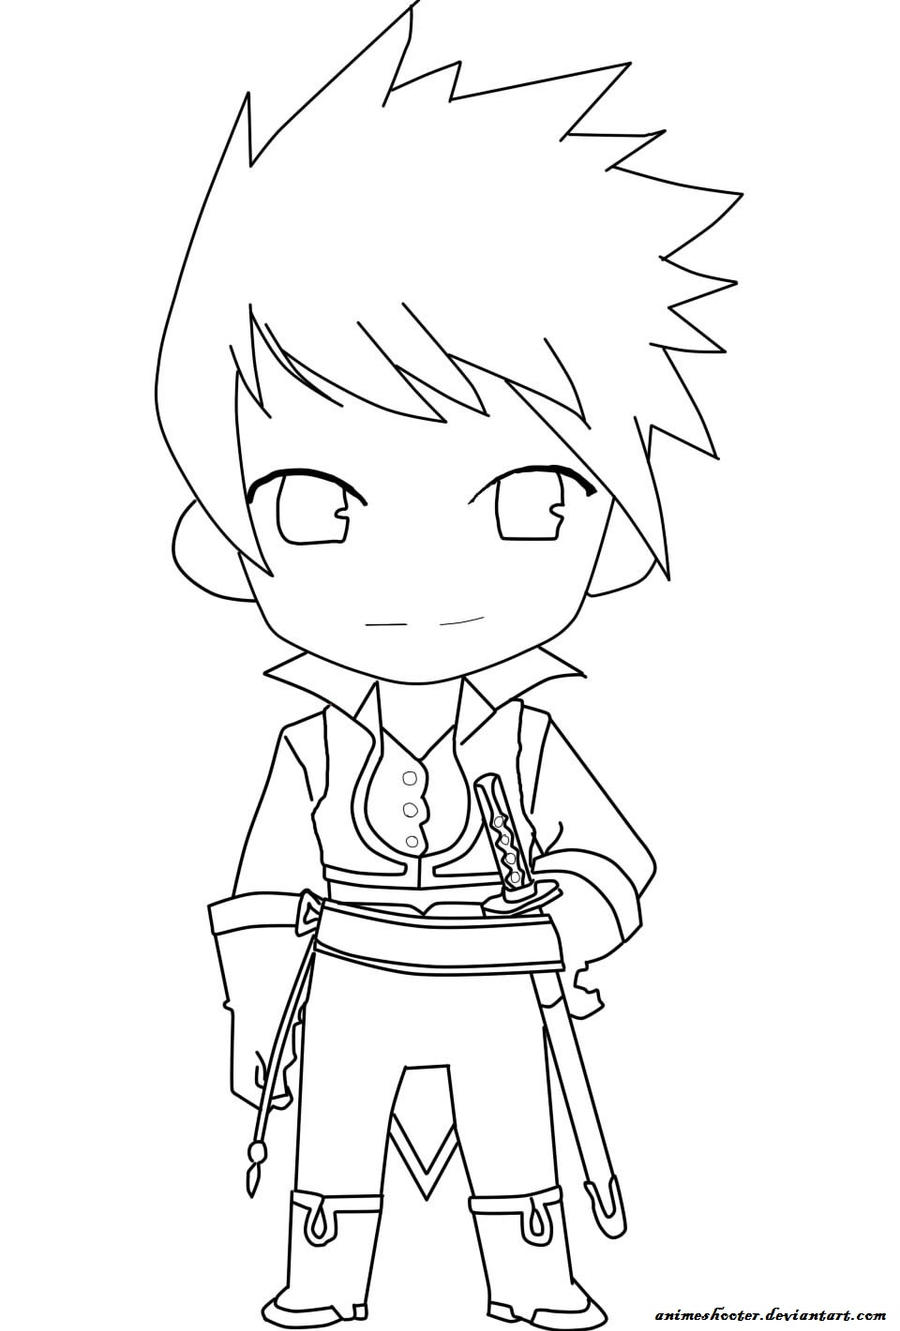 Lineart Anime Boy : Guy lineart by animeshooter on deviantart